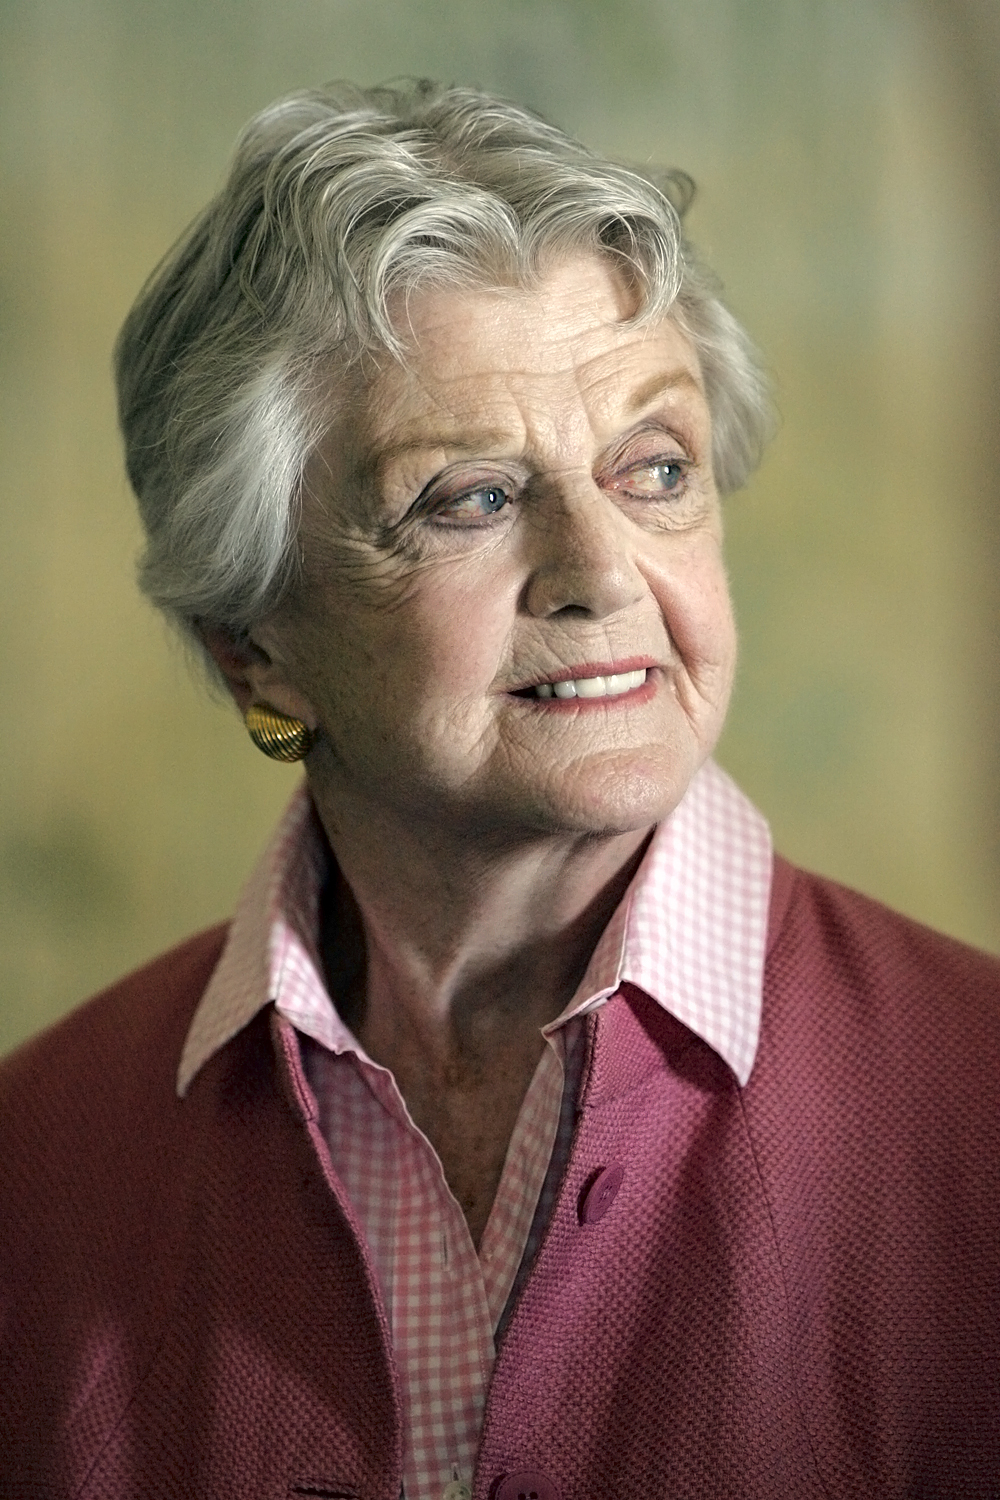 Angela Lansbury (born 1925 (naturalized American citizen)